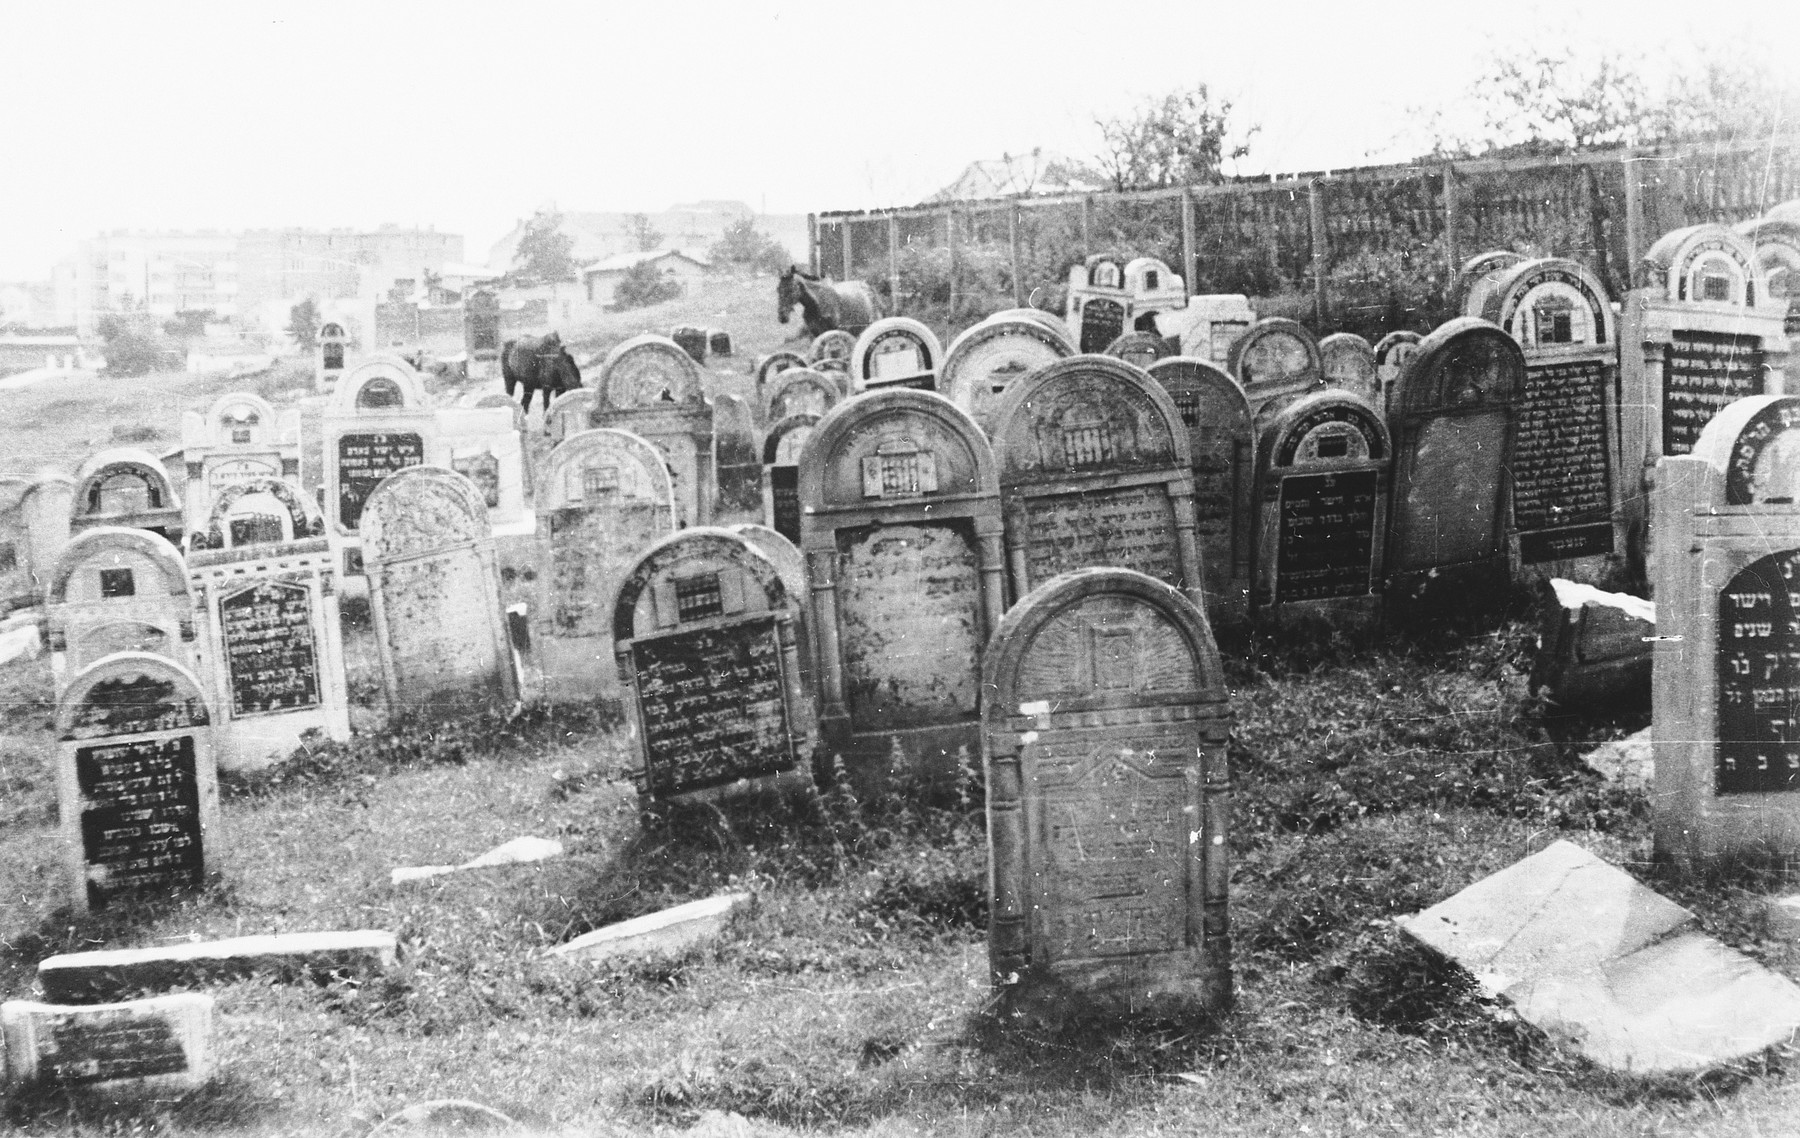 View of the Jewish cemetery in Lublin.